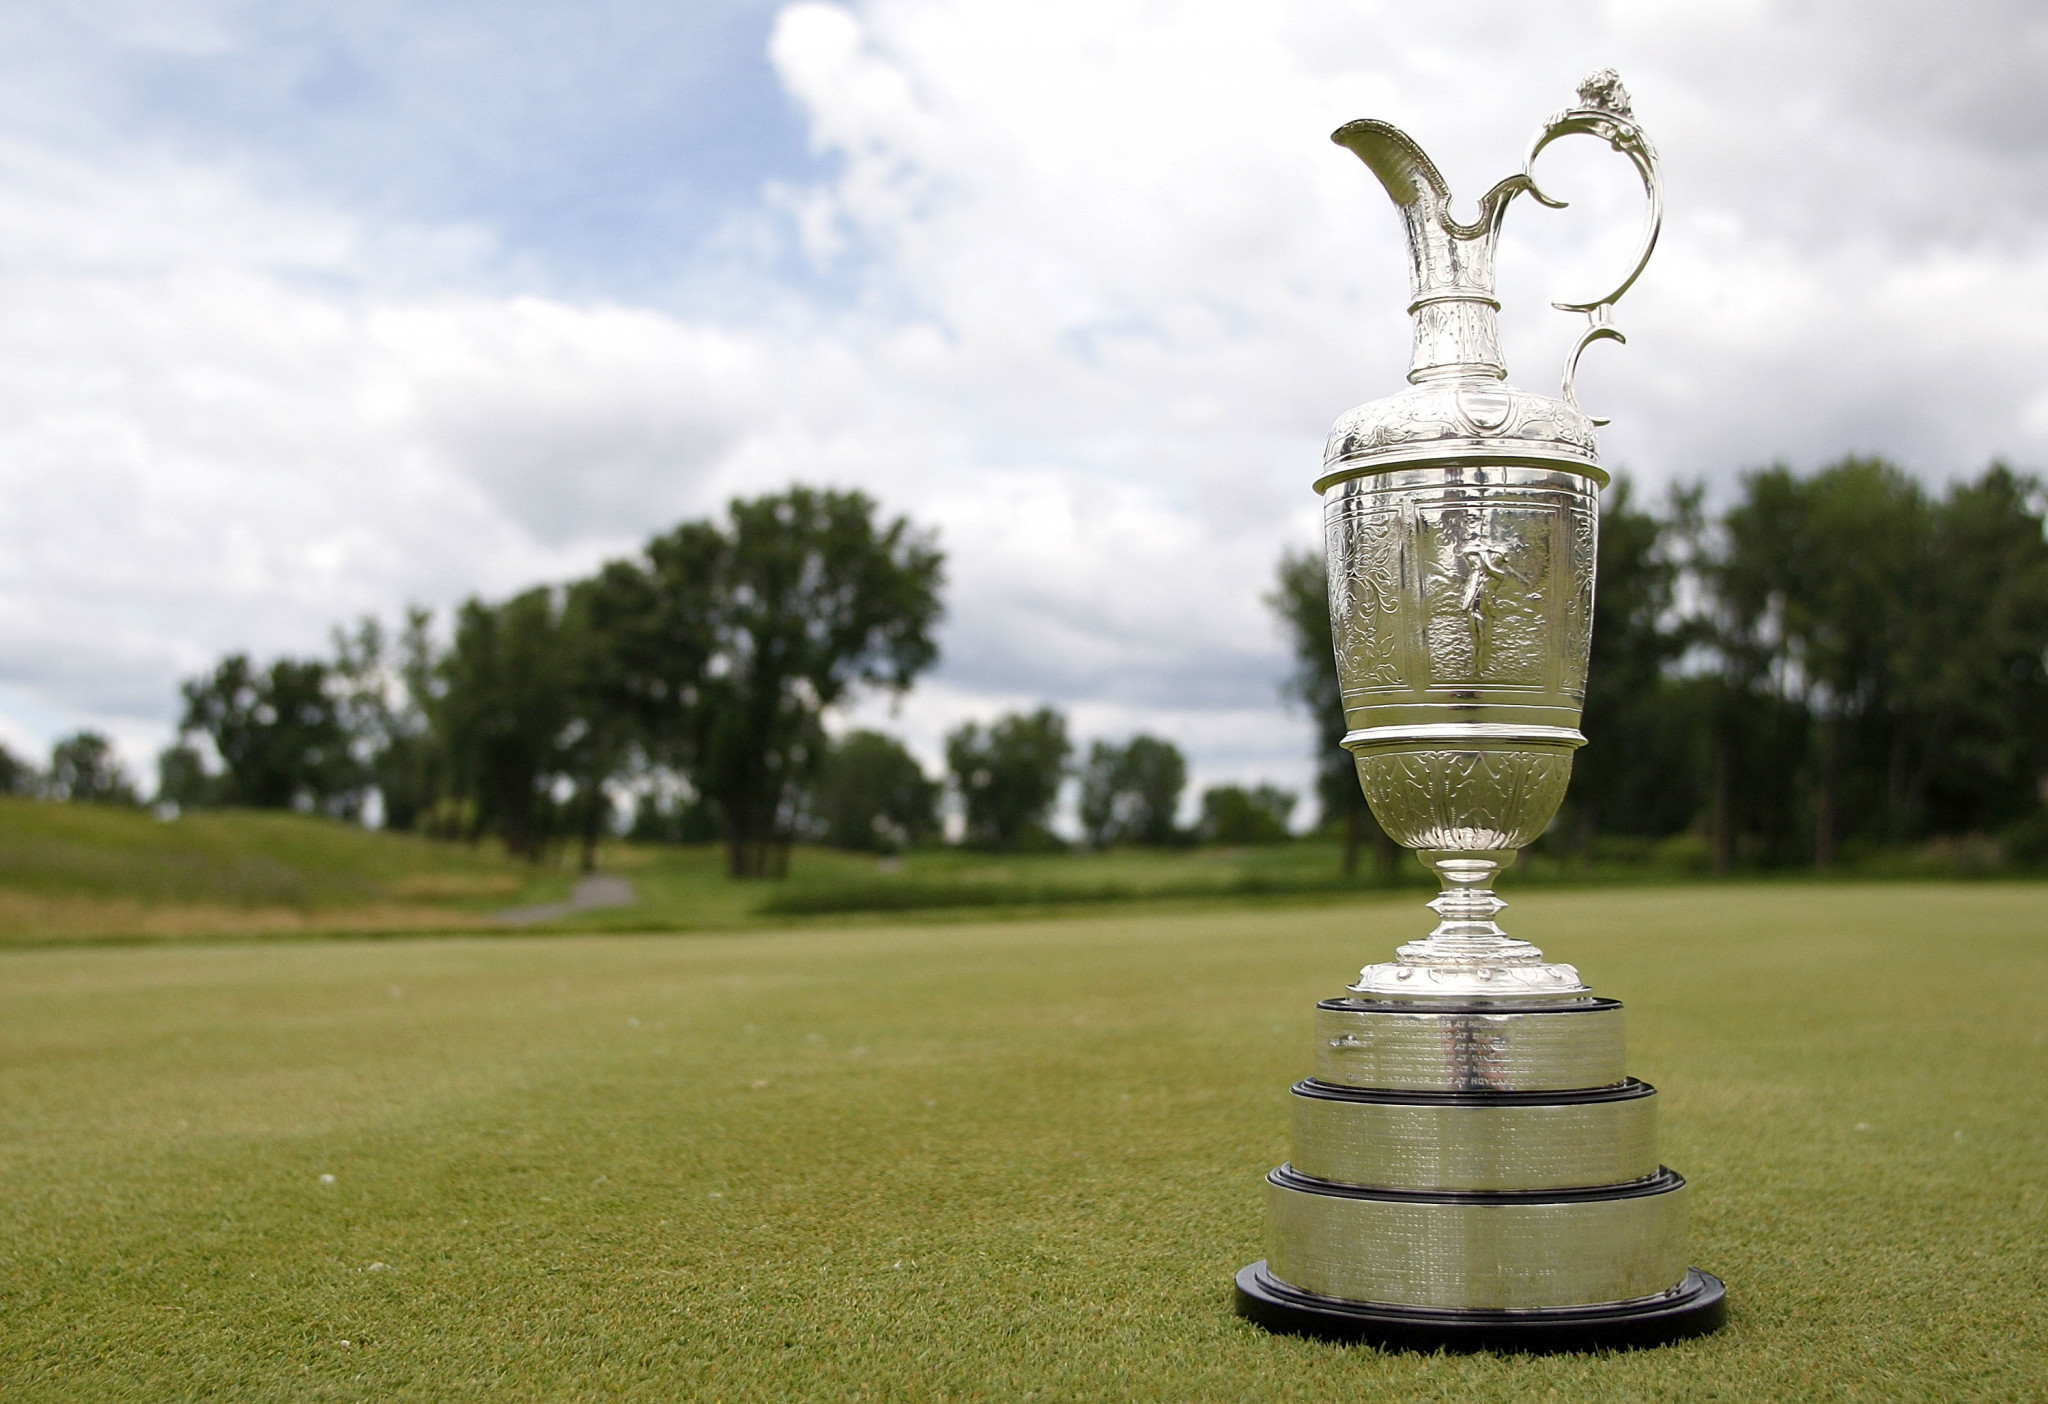 Royal Liverpool and Royal Troon confirmed as Open venues for 2023 and 2024